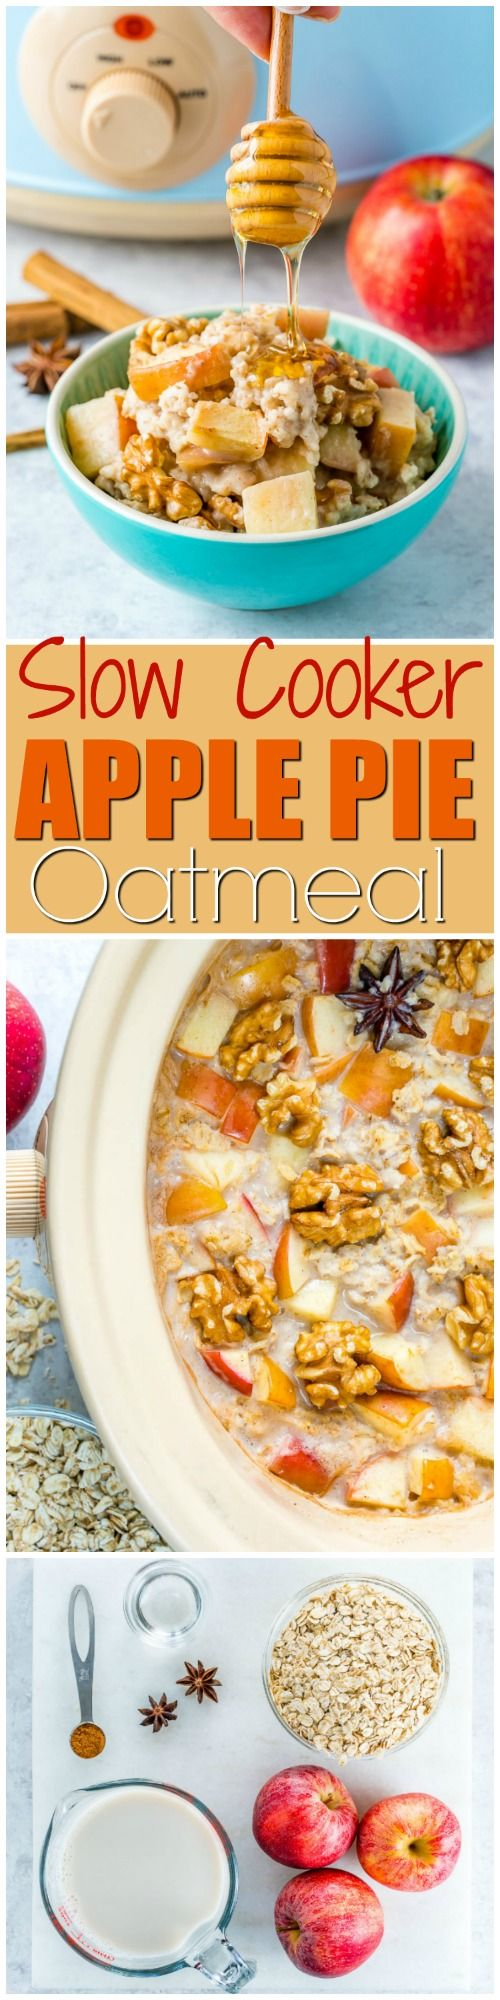 Slow Cooker Apple Pie Oatmeal for Warm Clean Eating Mornings! - Clean Food Crush